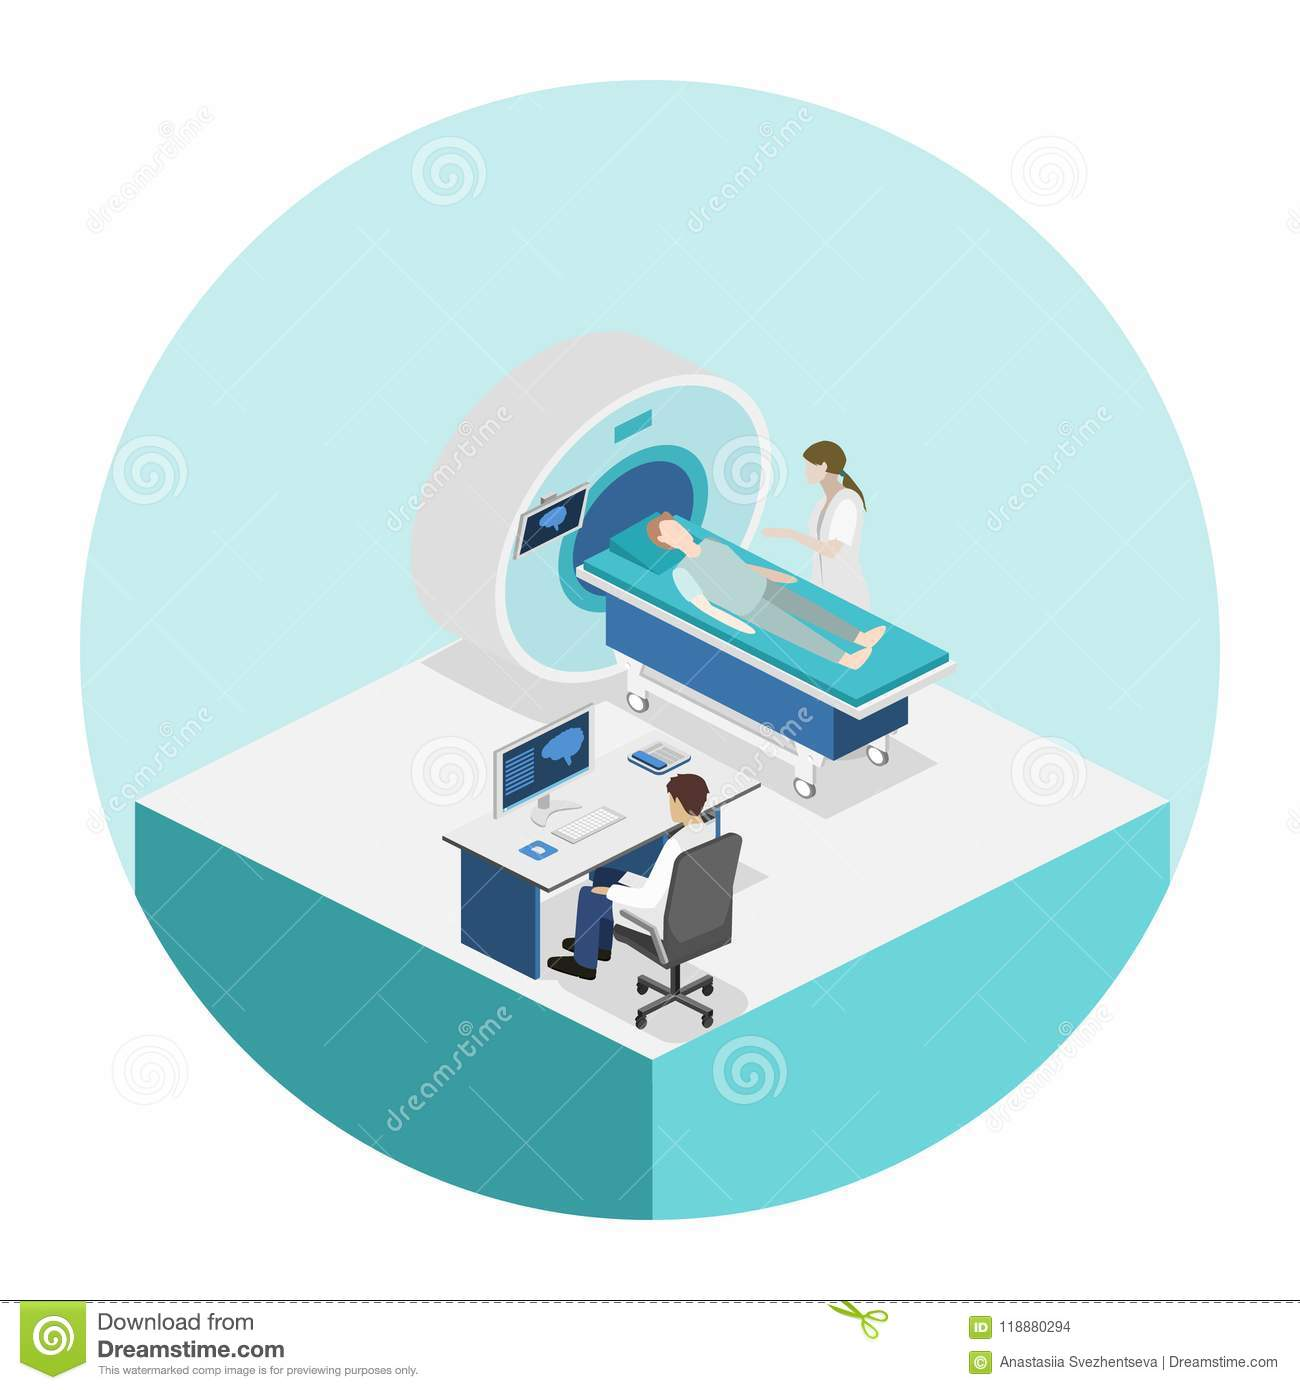 hight resolution of isometric flat 3d concept hospital medical mri web illustration